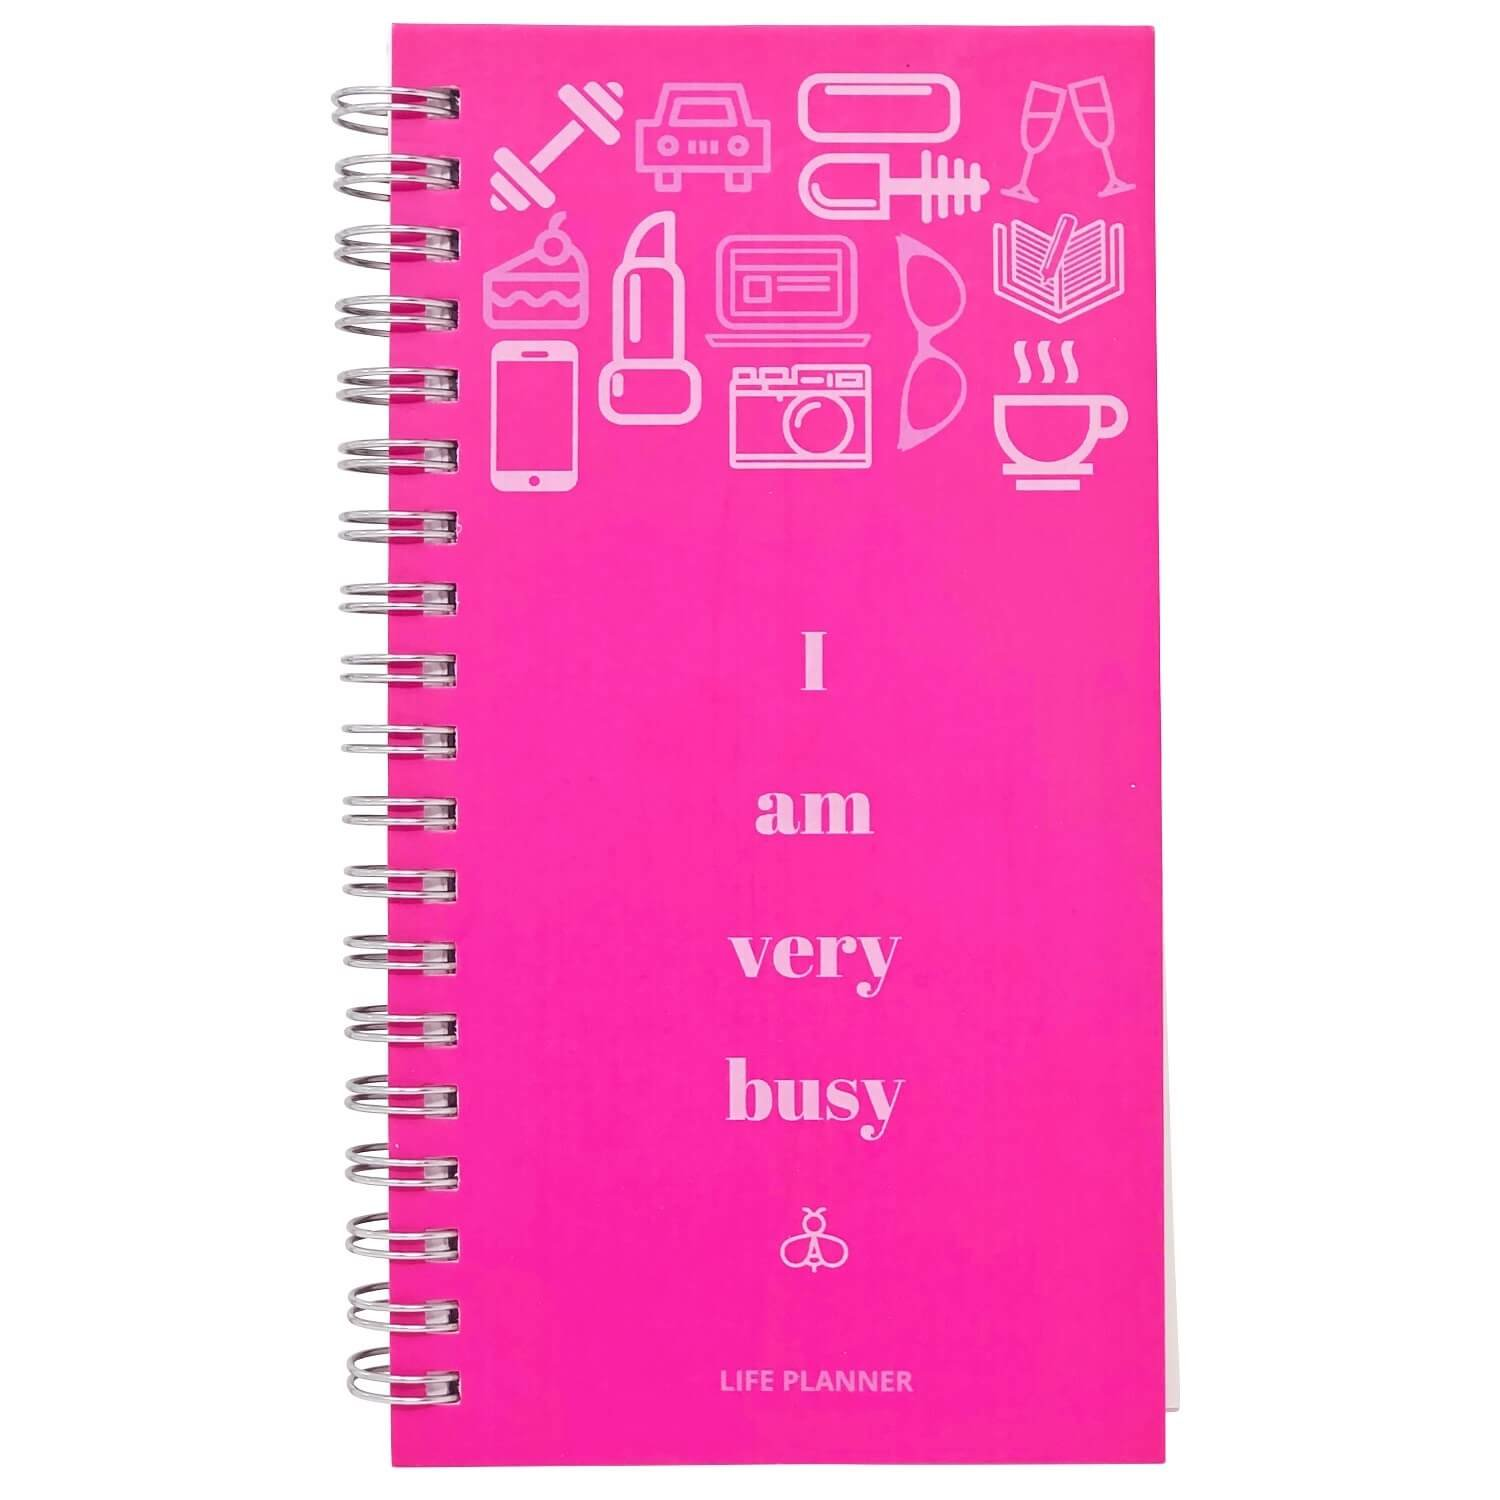 Yearly Day Planner-Passion Planners 2018 2019-Weekly Daily Monthly Pocket Calendar Undated Wedding Book-Productivity Notebook Journal Spiral Personal Agenda-Academic Teacher Student School College